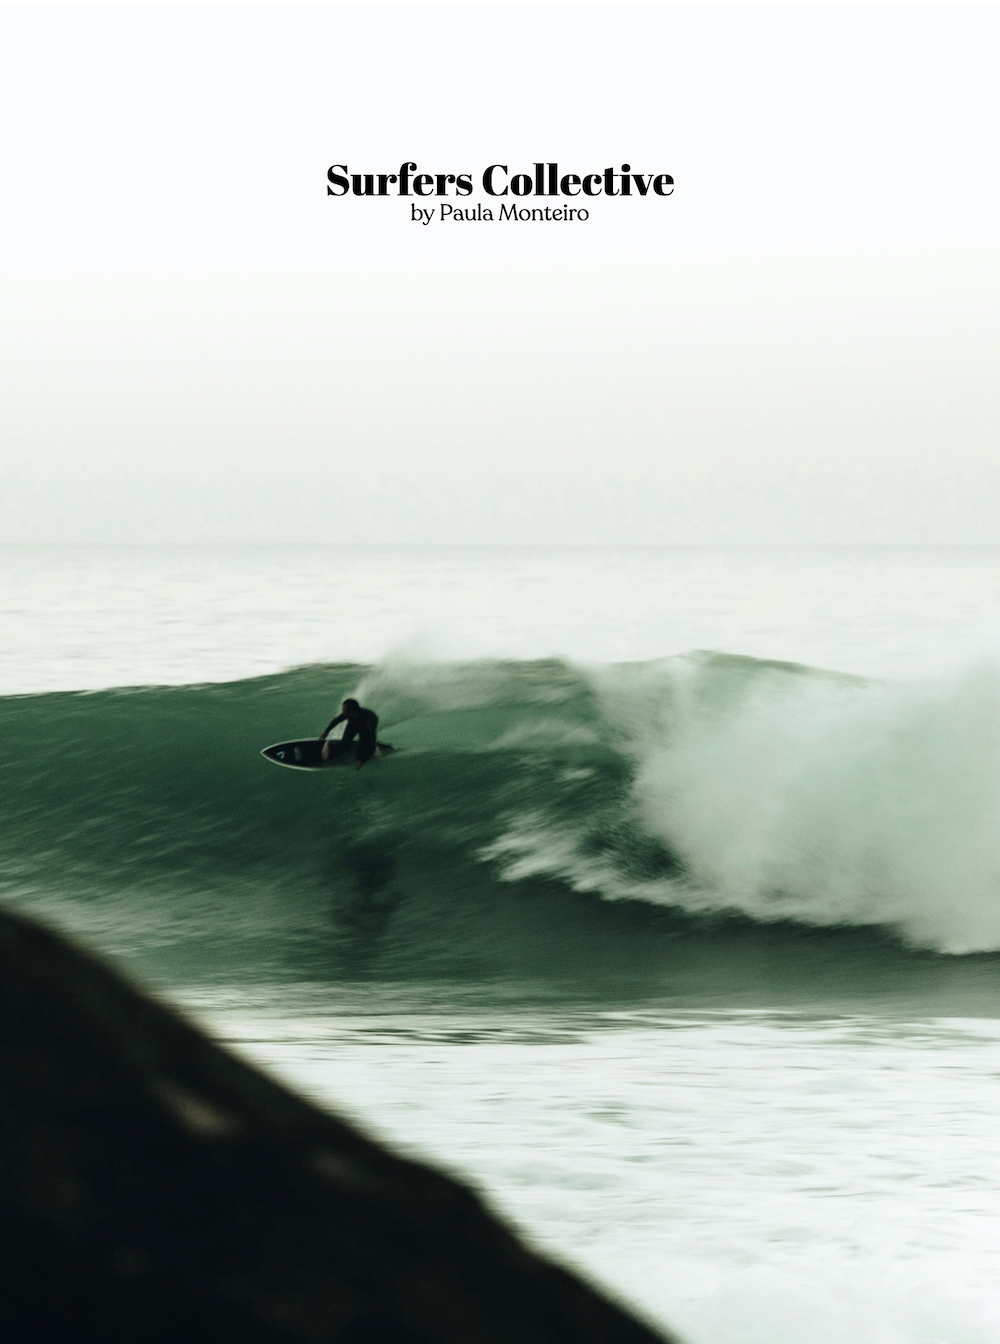 Surfers Collective